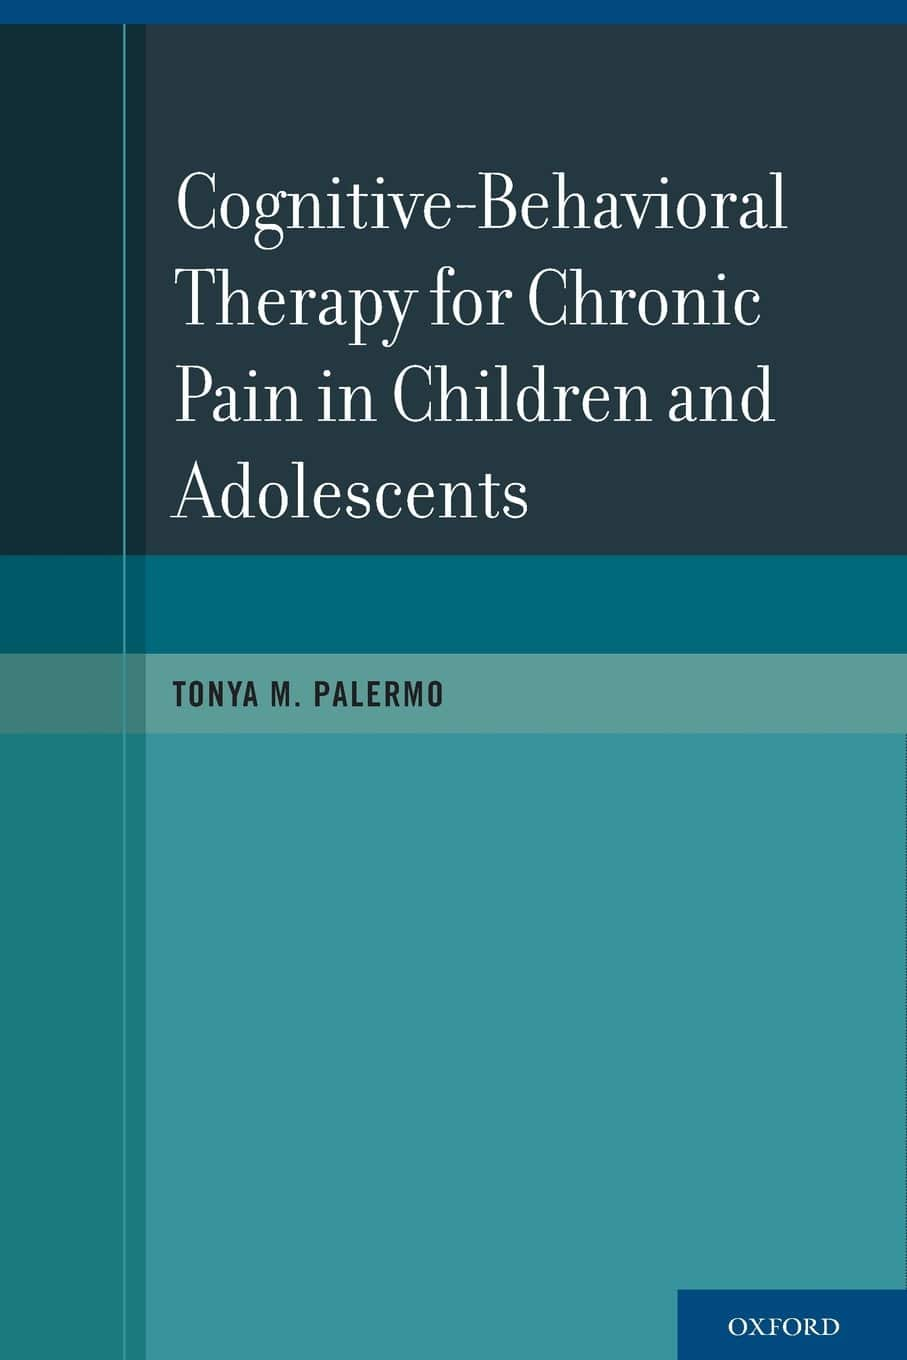 Cognitive behavioral therapy for chronic pain in children ...